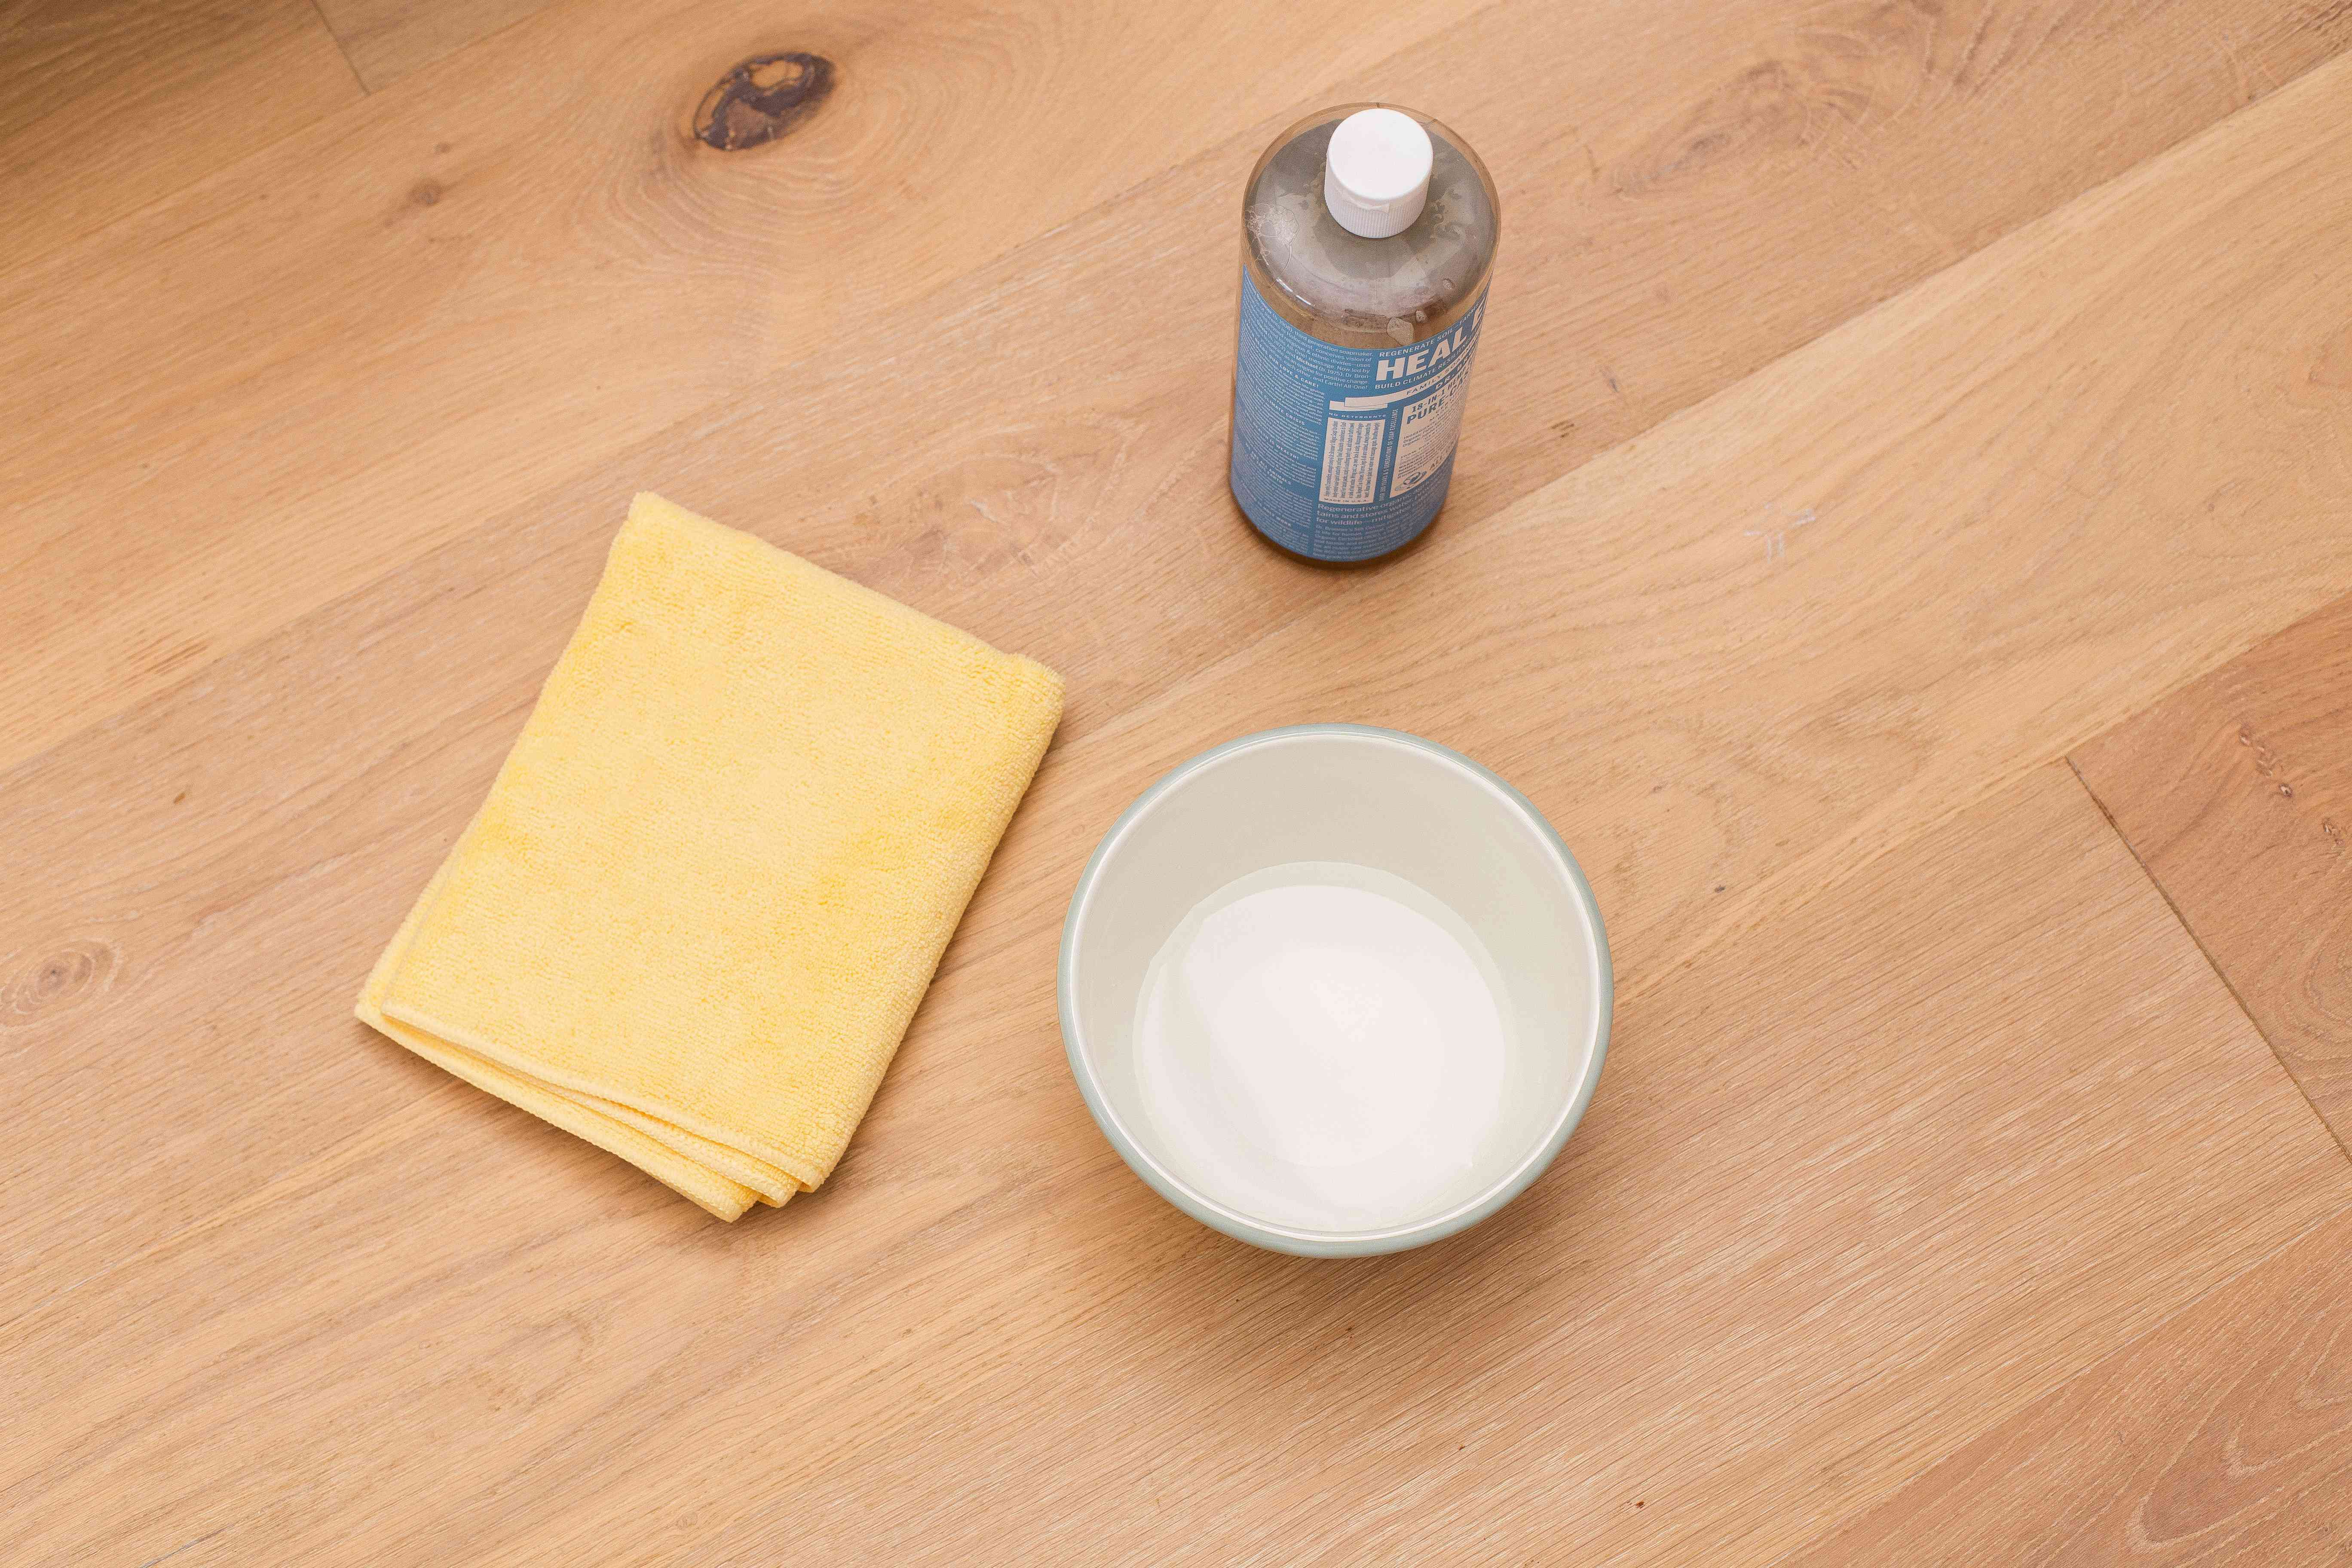 Mild soap bottle next to microfiber cloth and bowl of water for cleaning solution